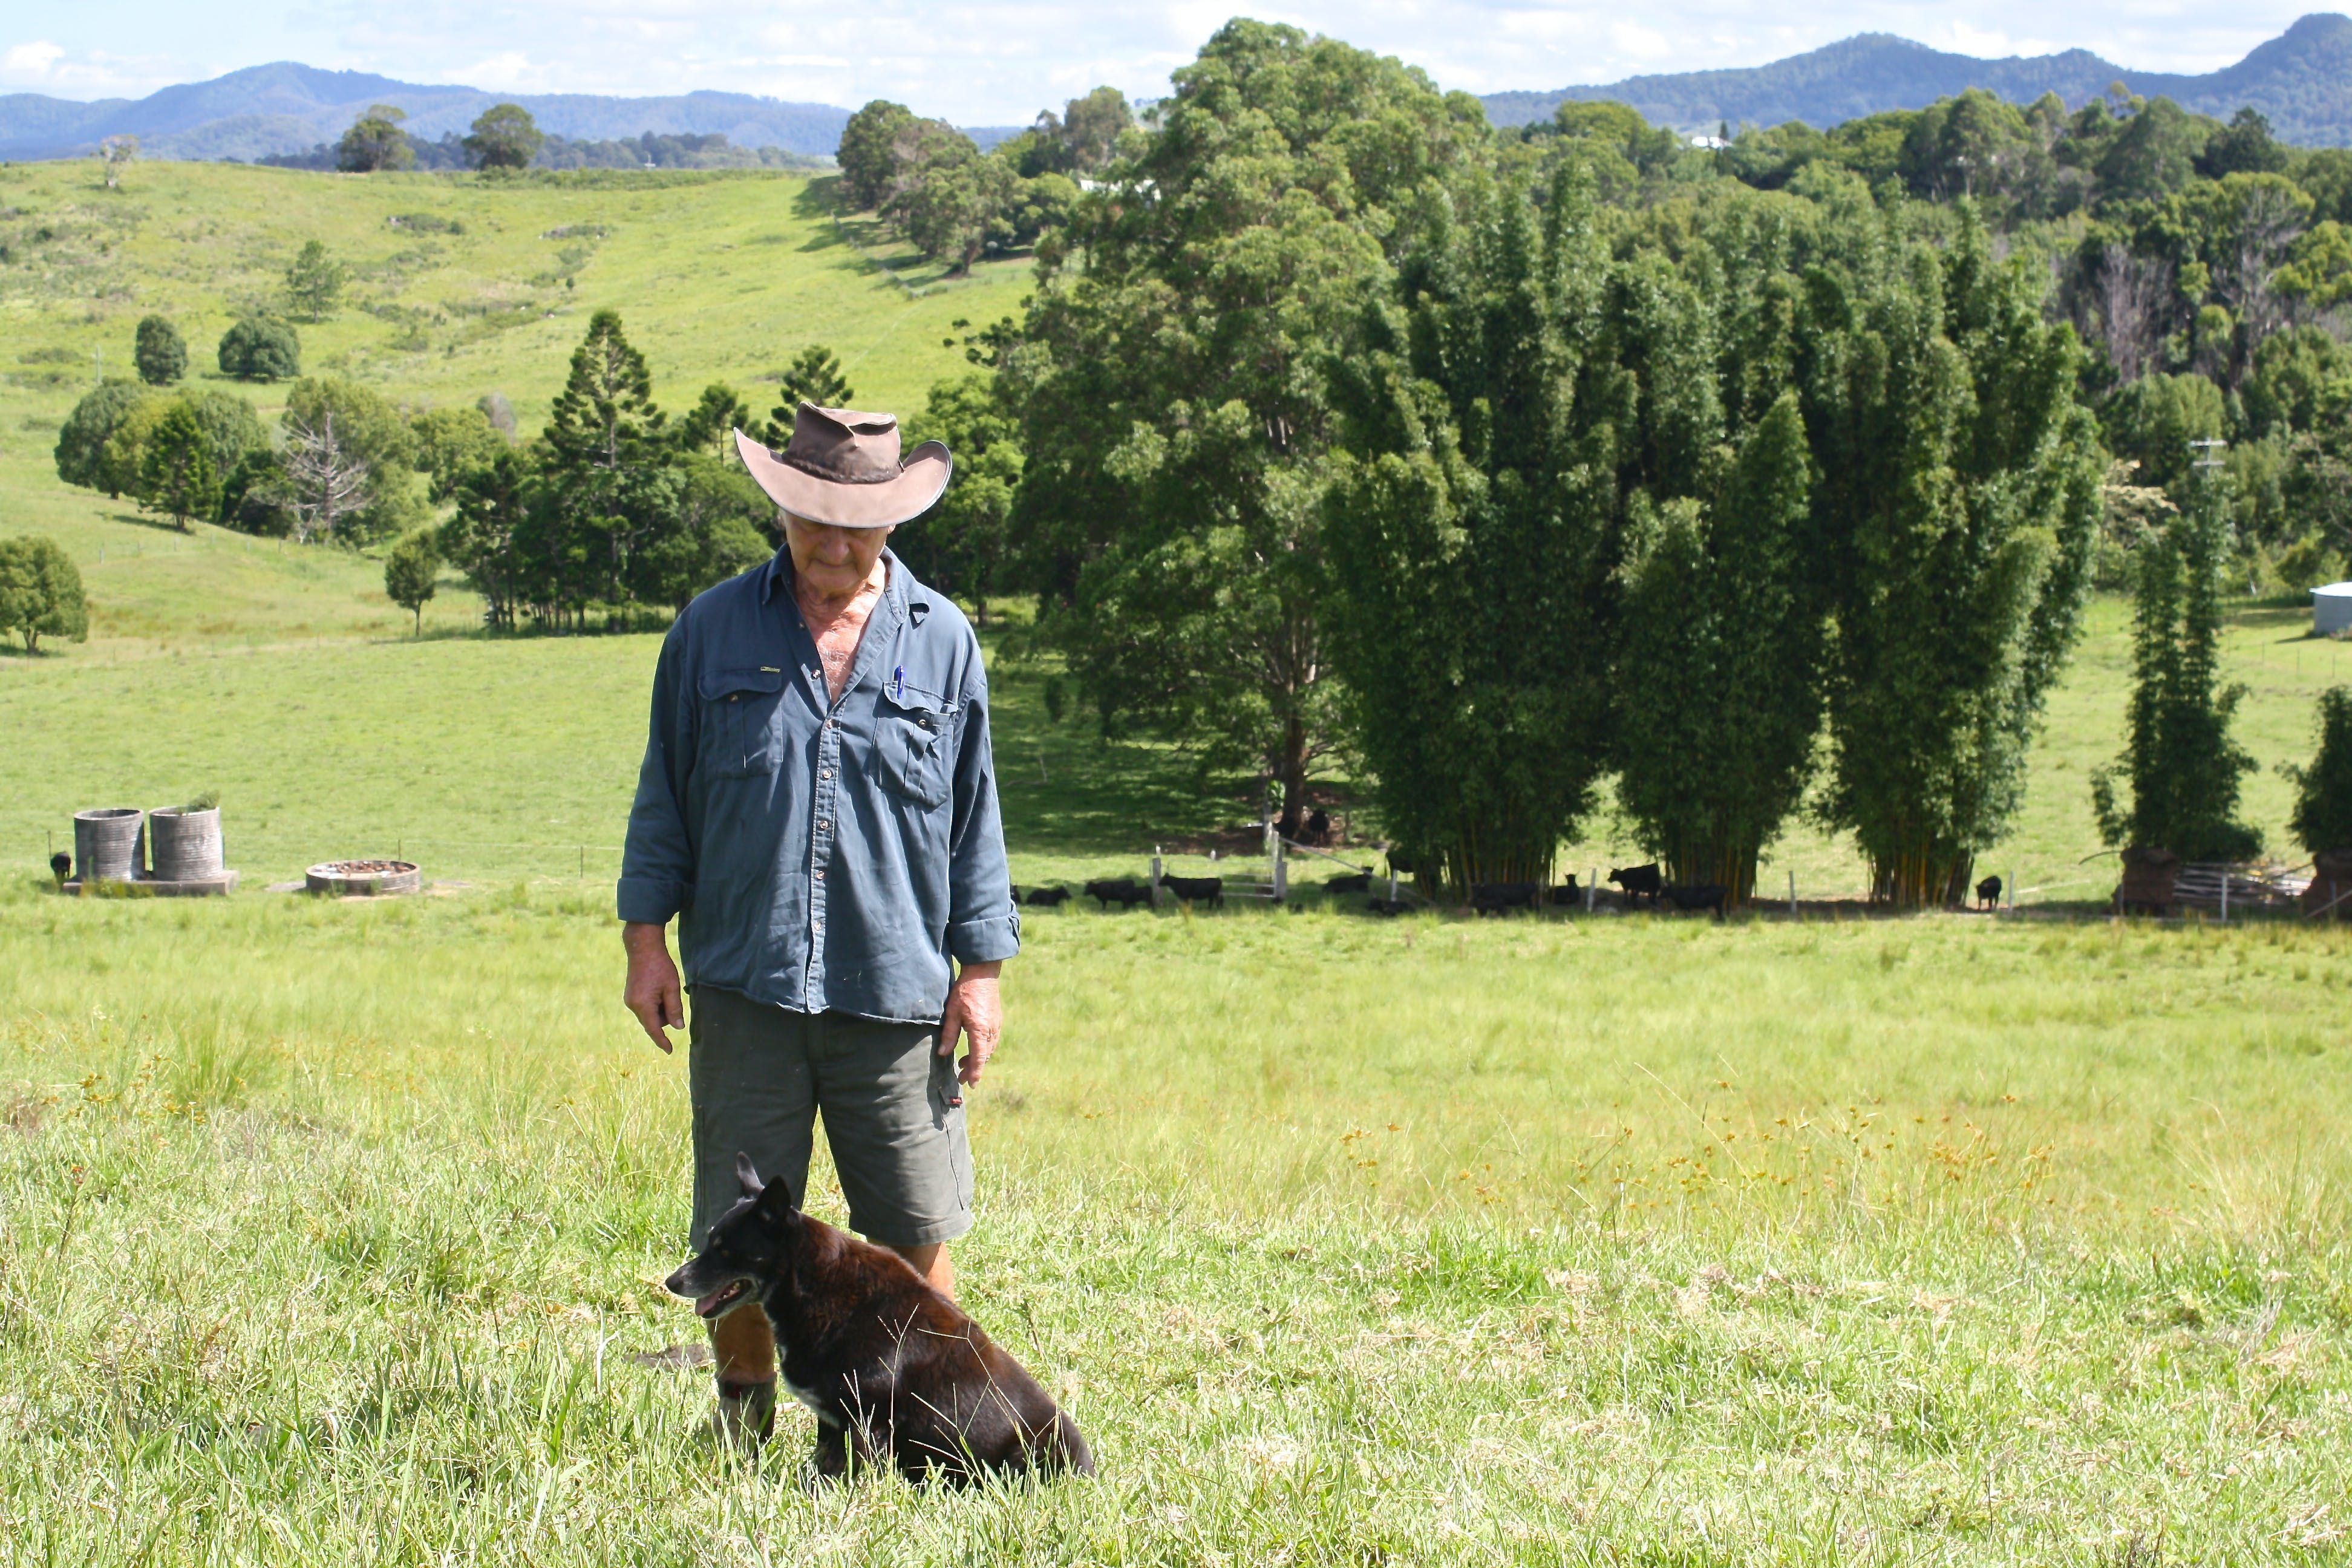 Merv Pepper, long time Myocum farmer. Read his story in the draft Strategy